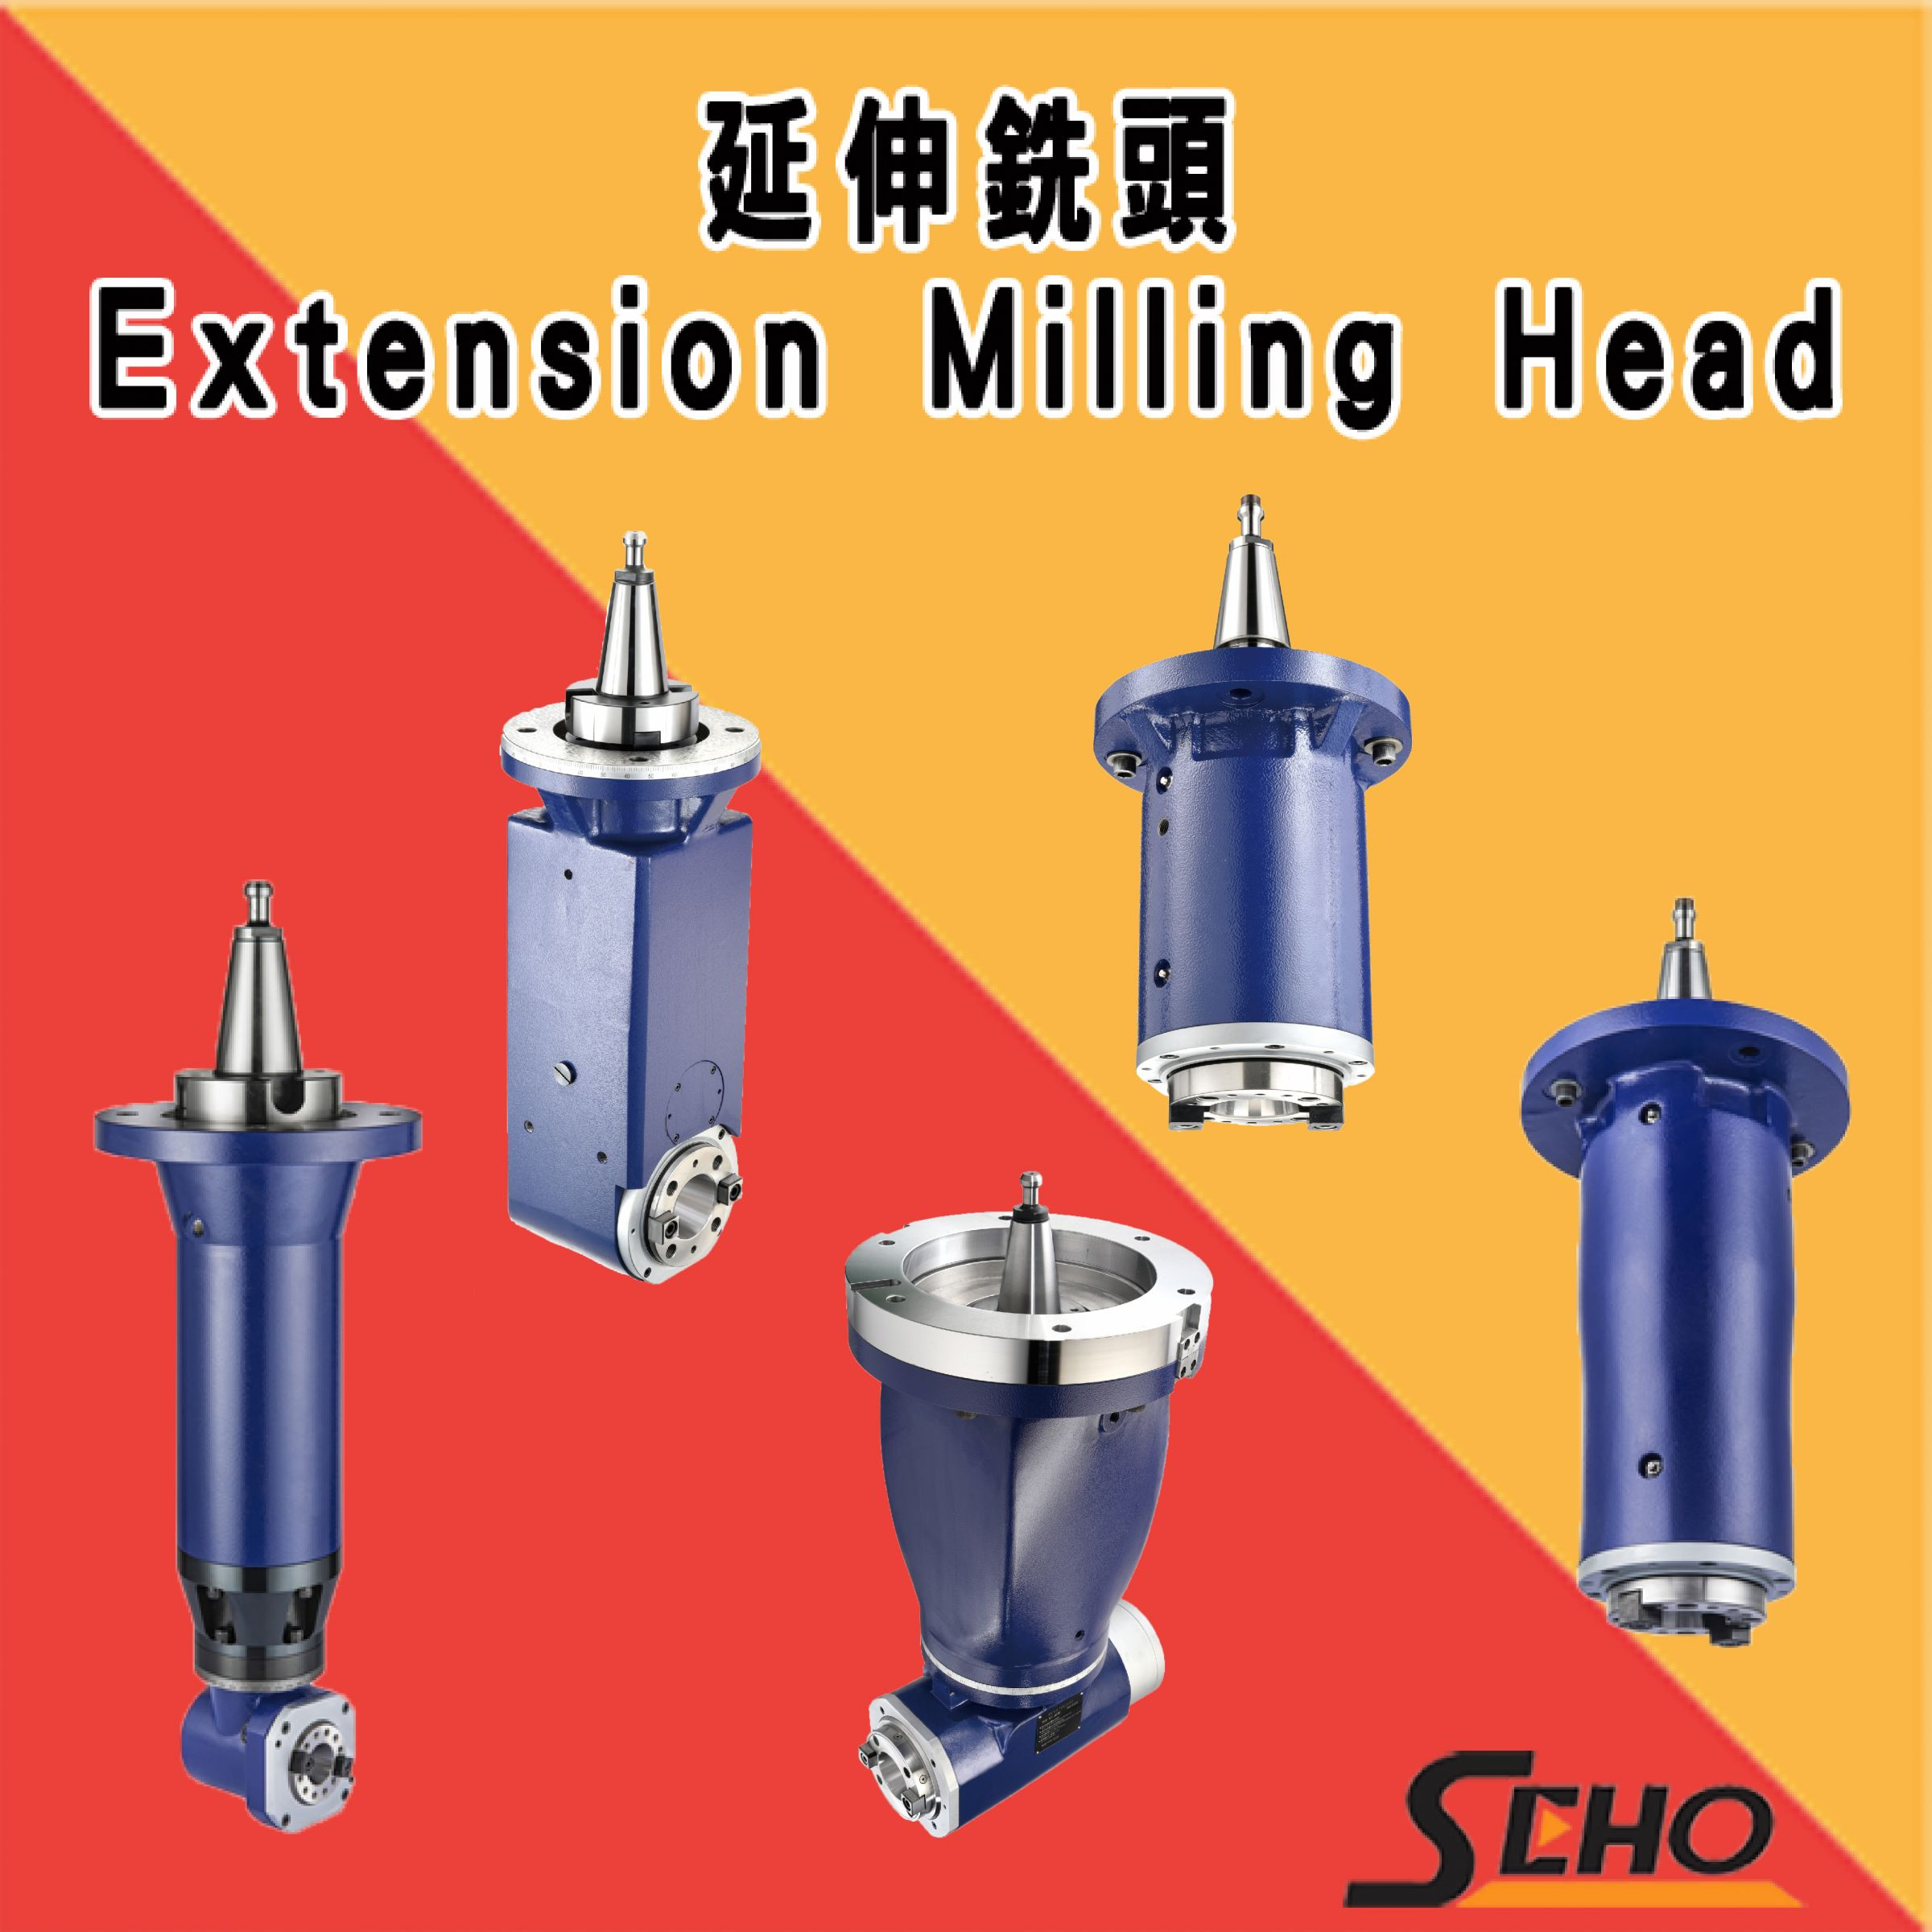 Extension Milling Head